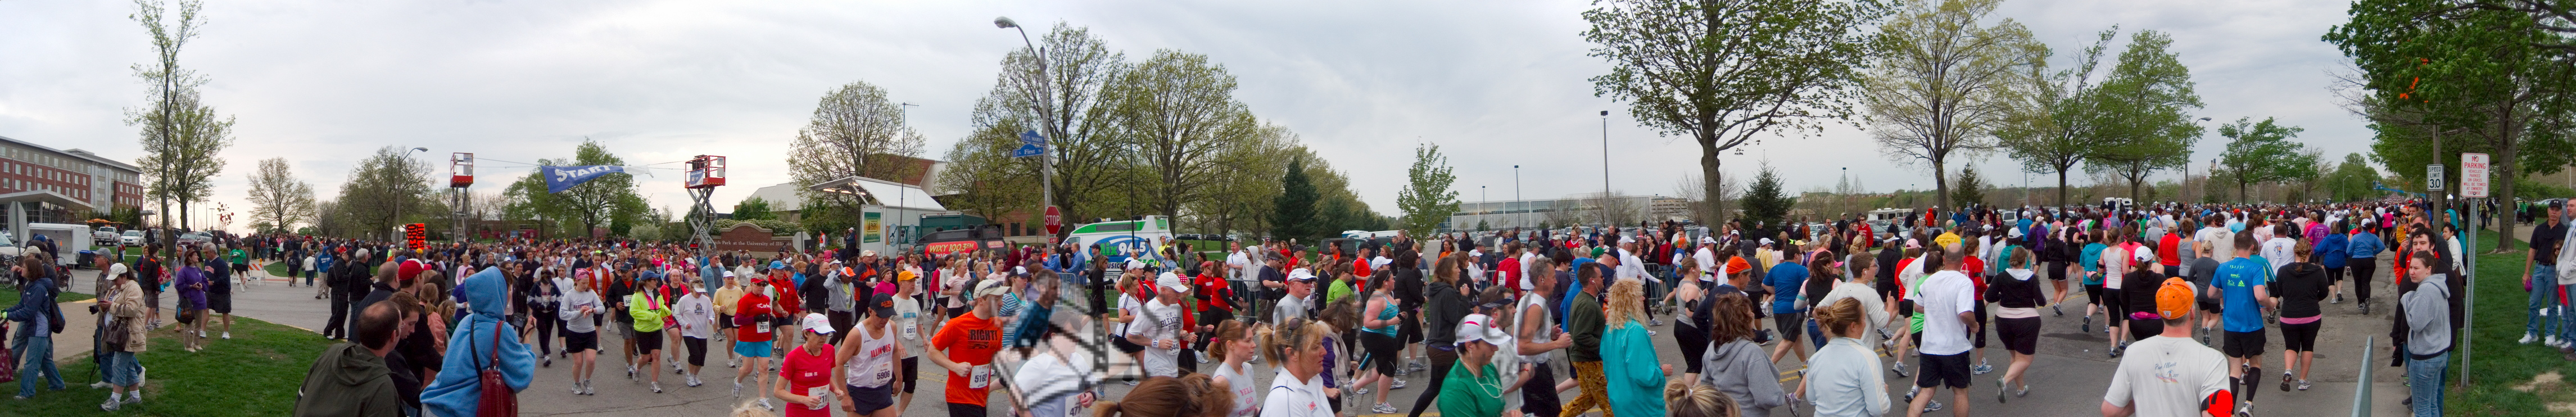 p82-1-p82-8half.jpg  Illinois Marathon 2011 Starting Line